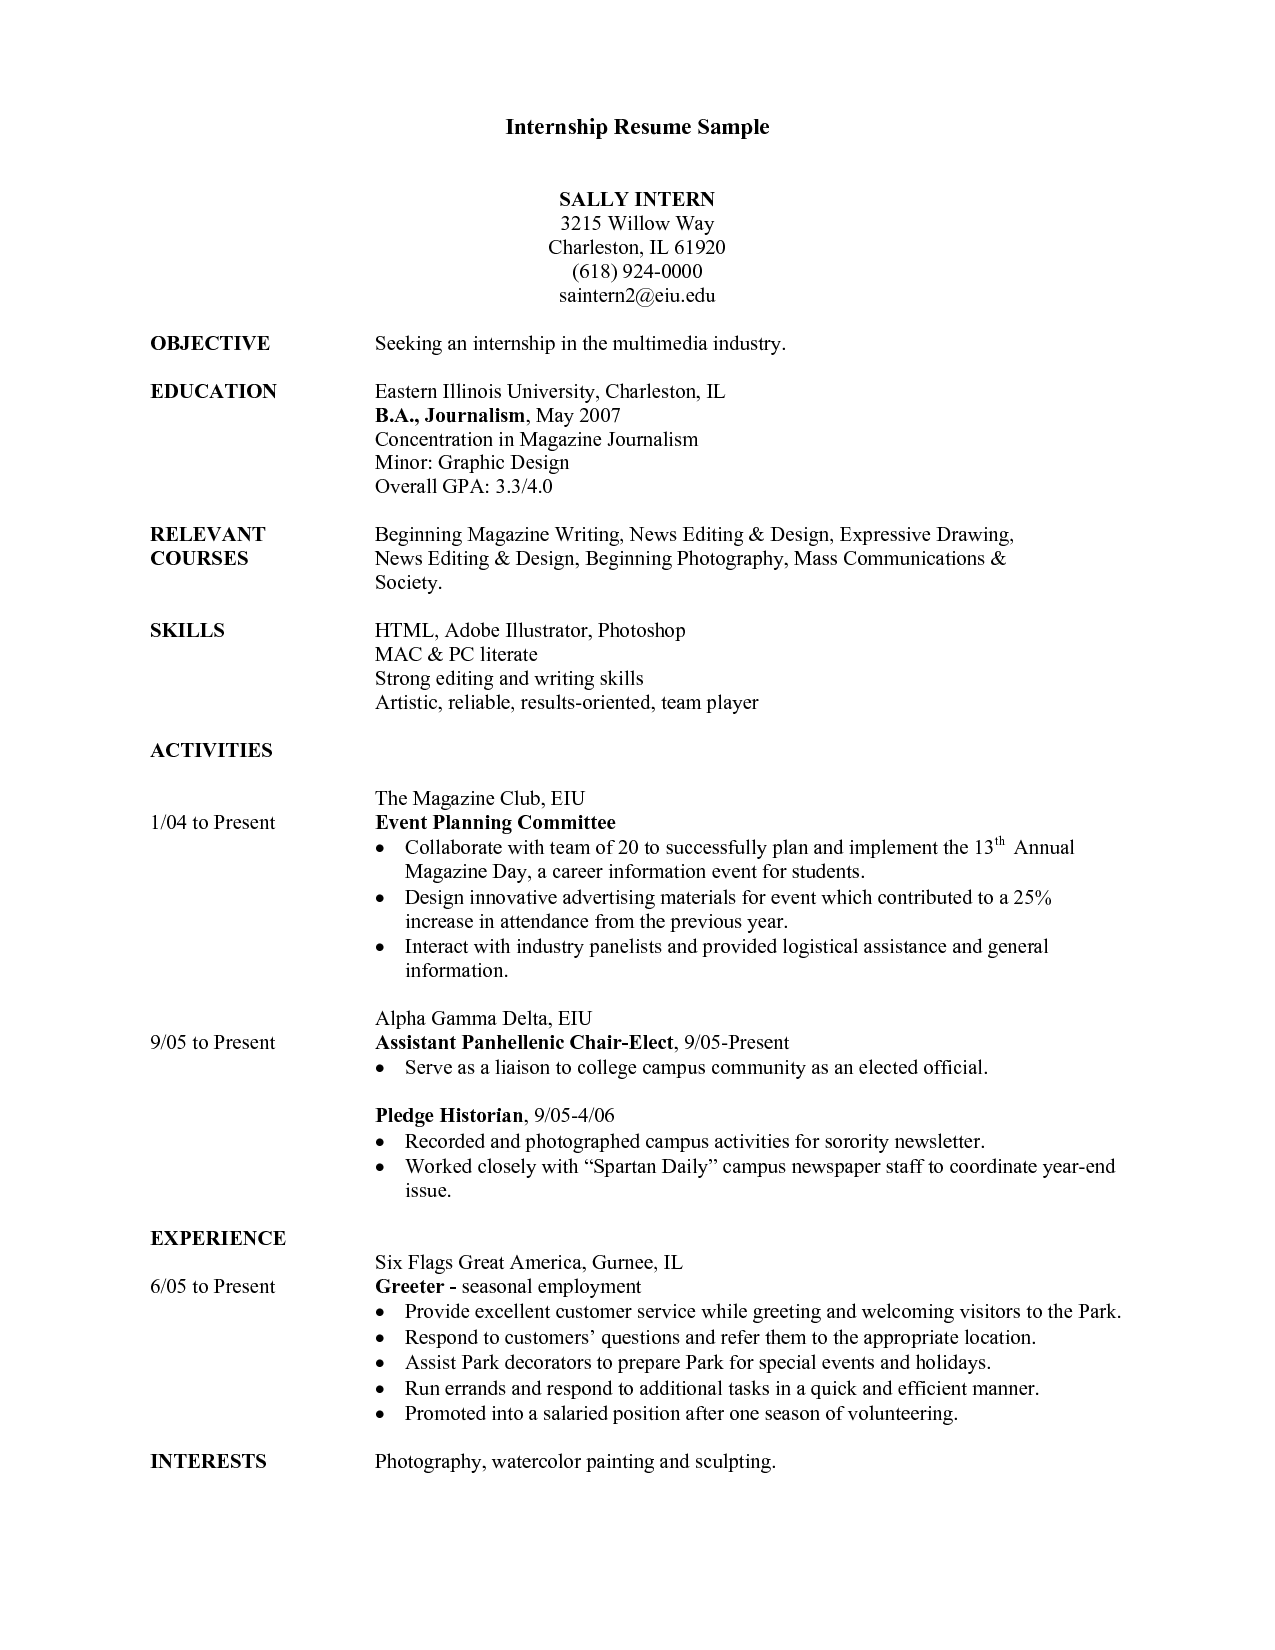 How to Write Resume for Internship | RecentResumes.com